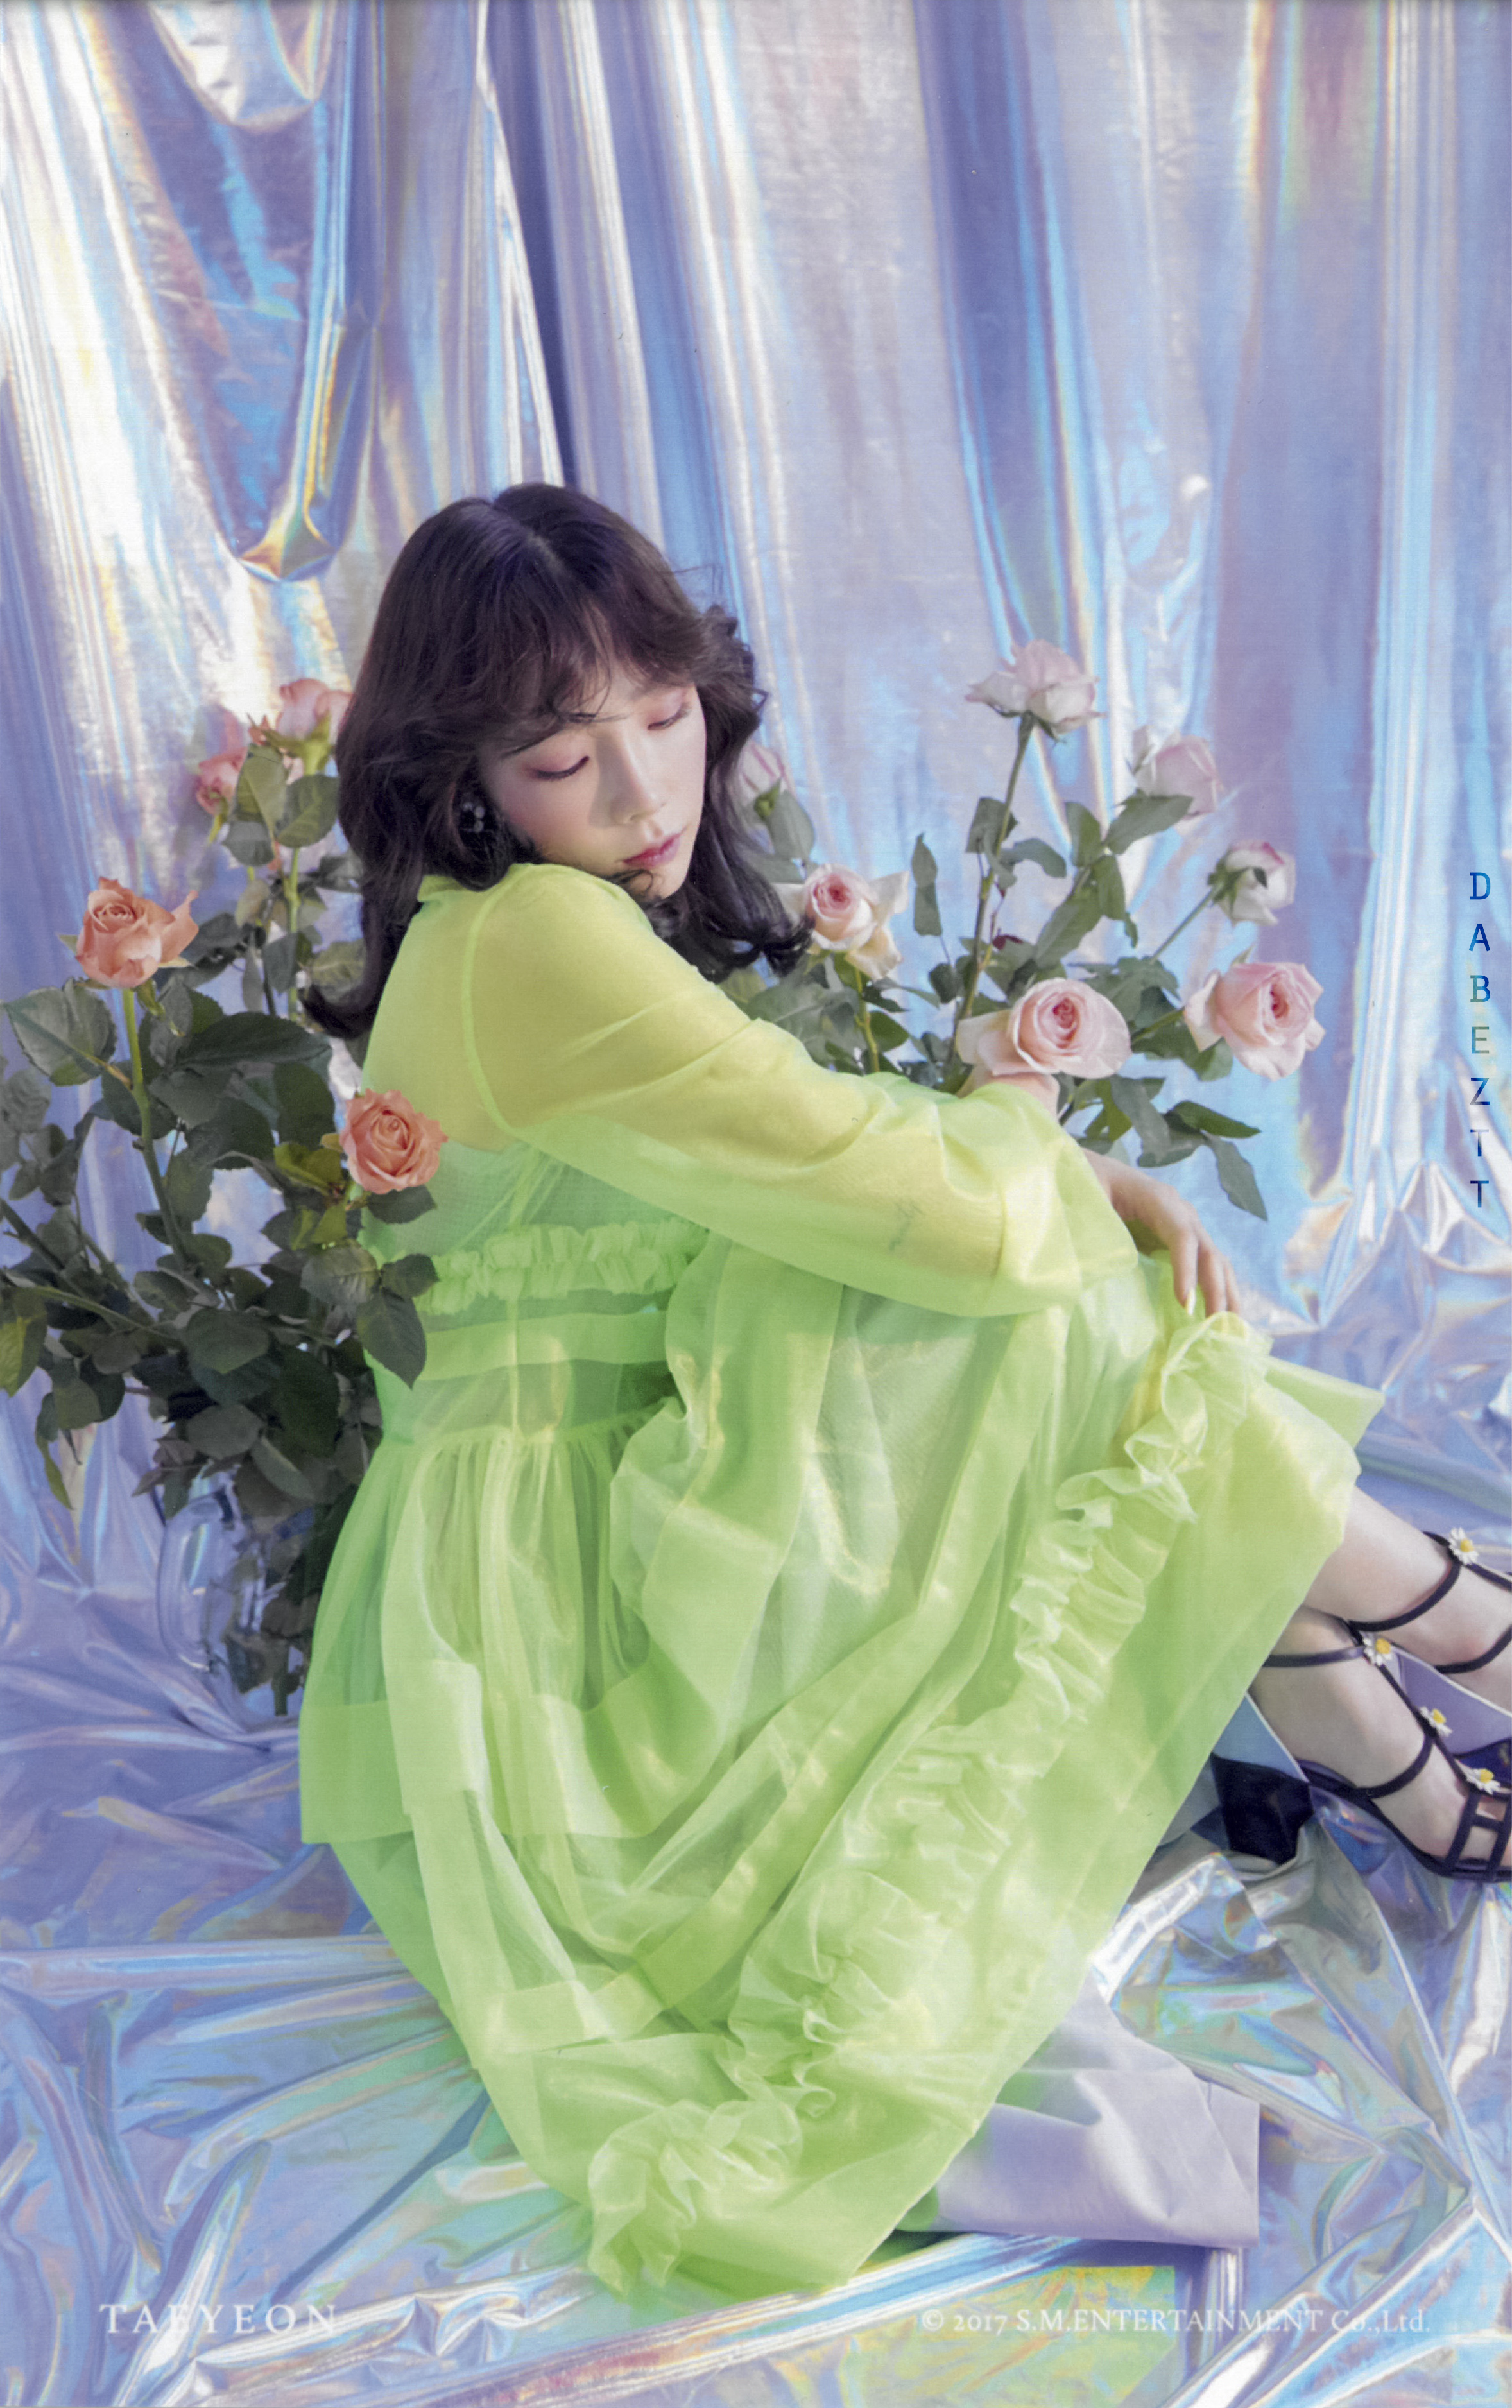 Taeyeon - My Voice - Deluxe Edition | Manuth Chek's SoShi Site